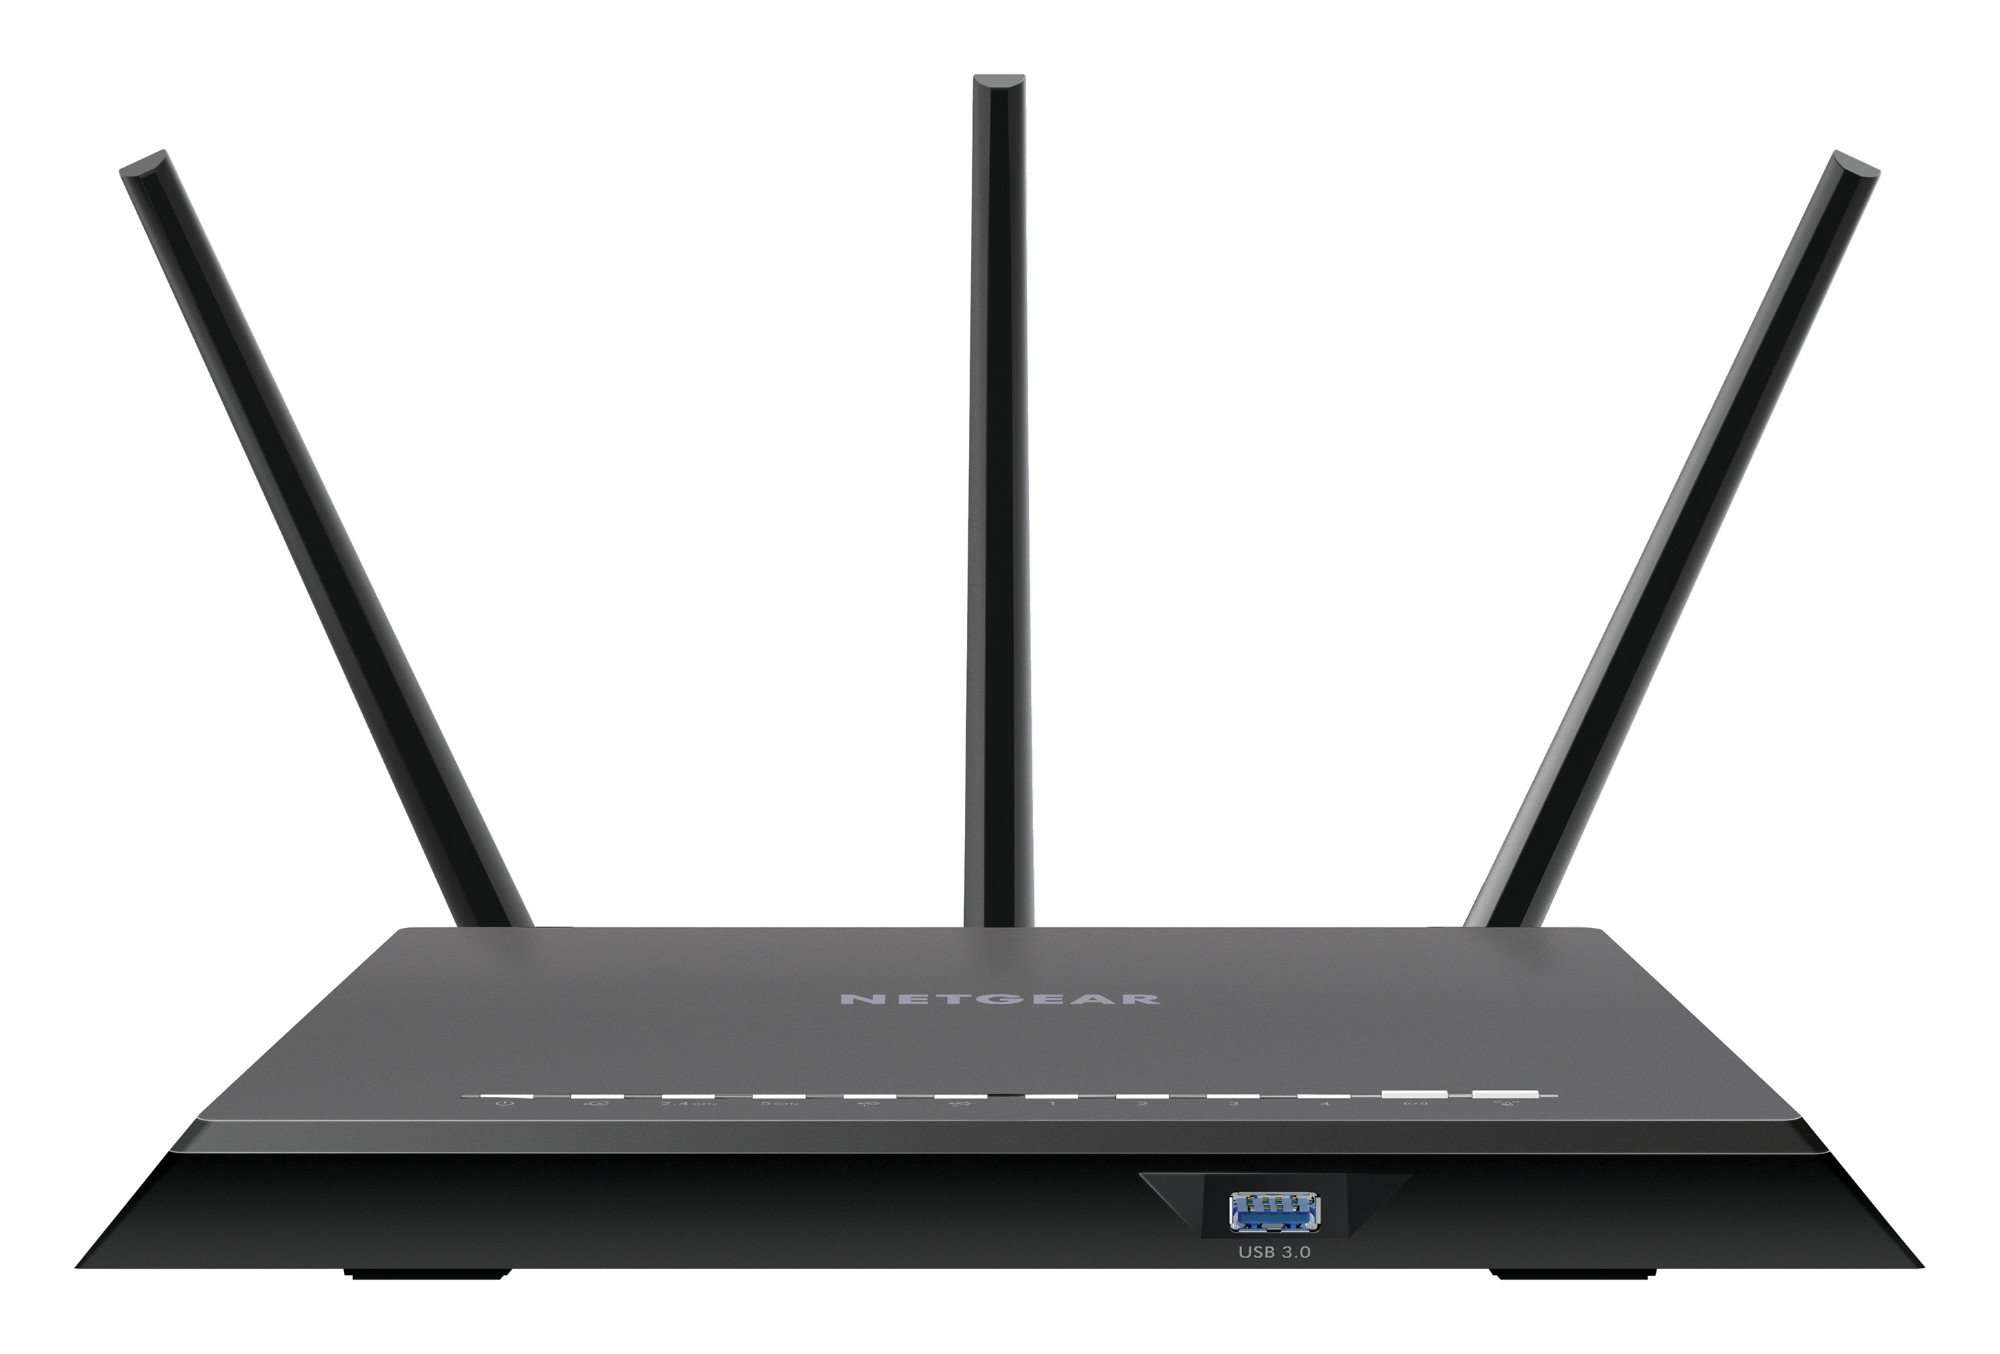 Netgear Nighthawk R7000 AC1900 Dual-Band Smart WiFi Router